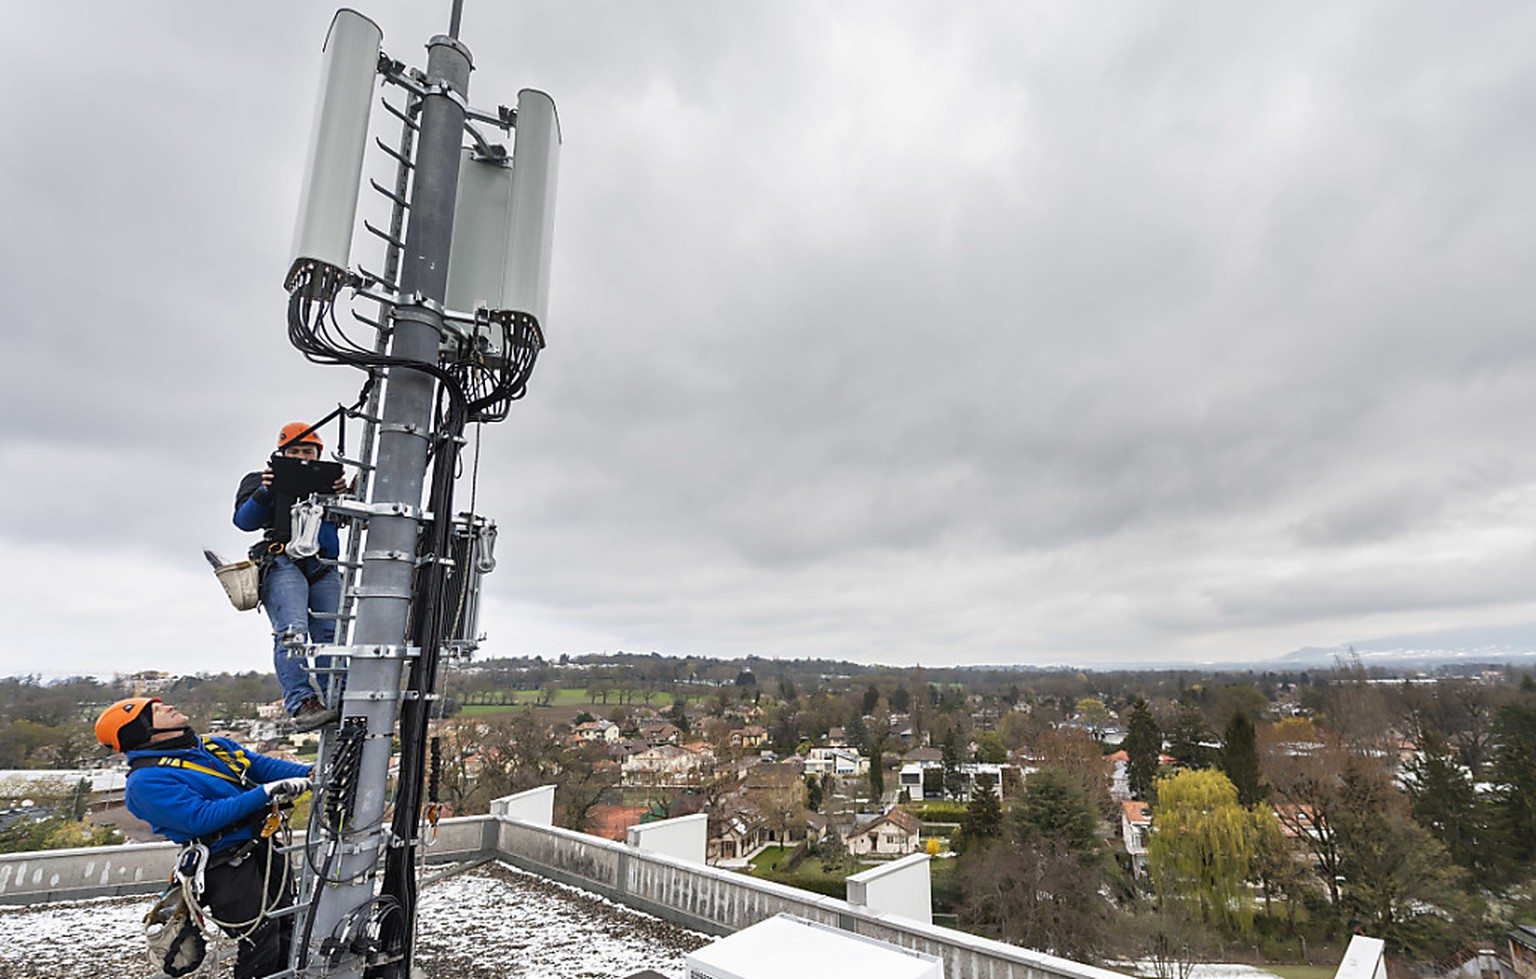 Montage einer 5G-Antenne in Chêne-Bougeries am 5. April im Kanton Genf.